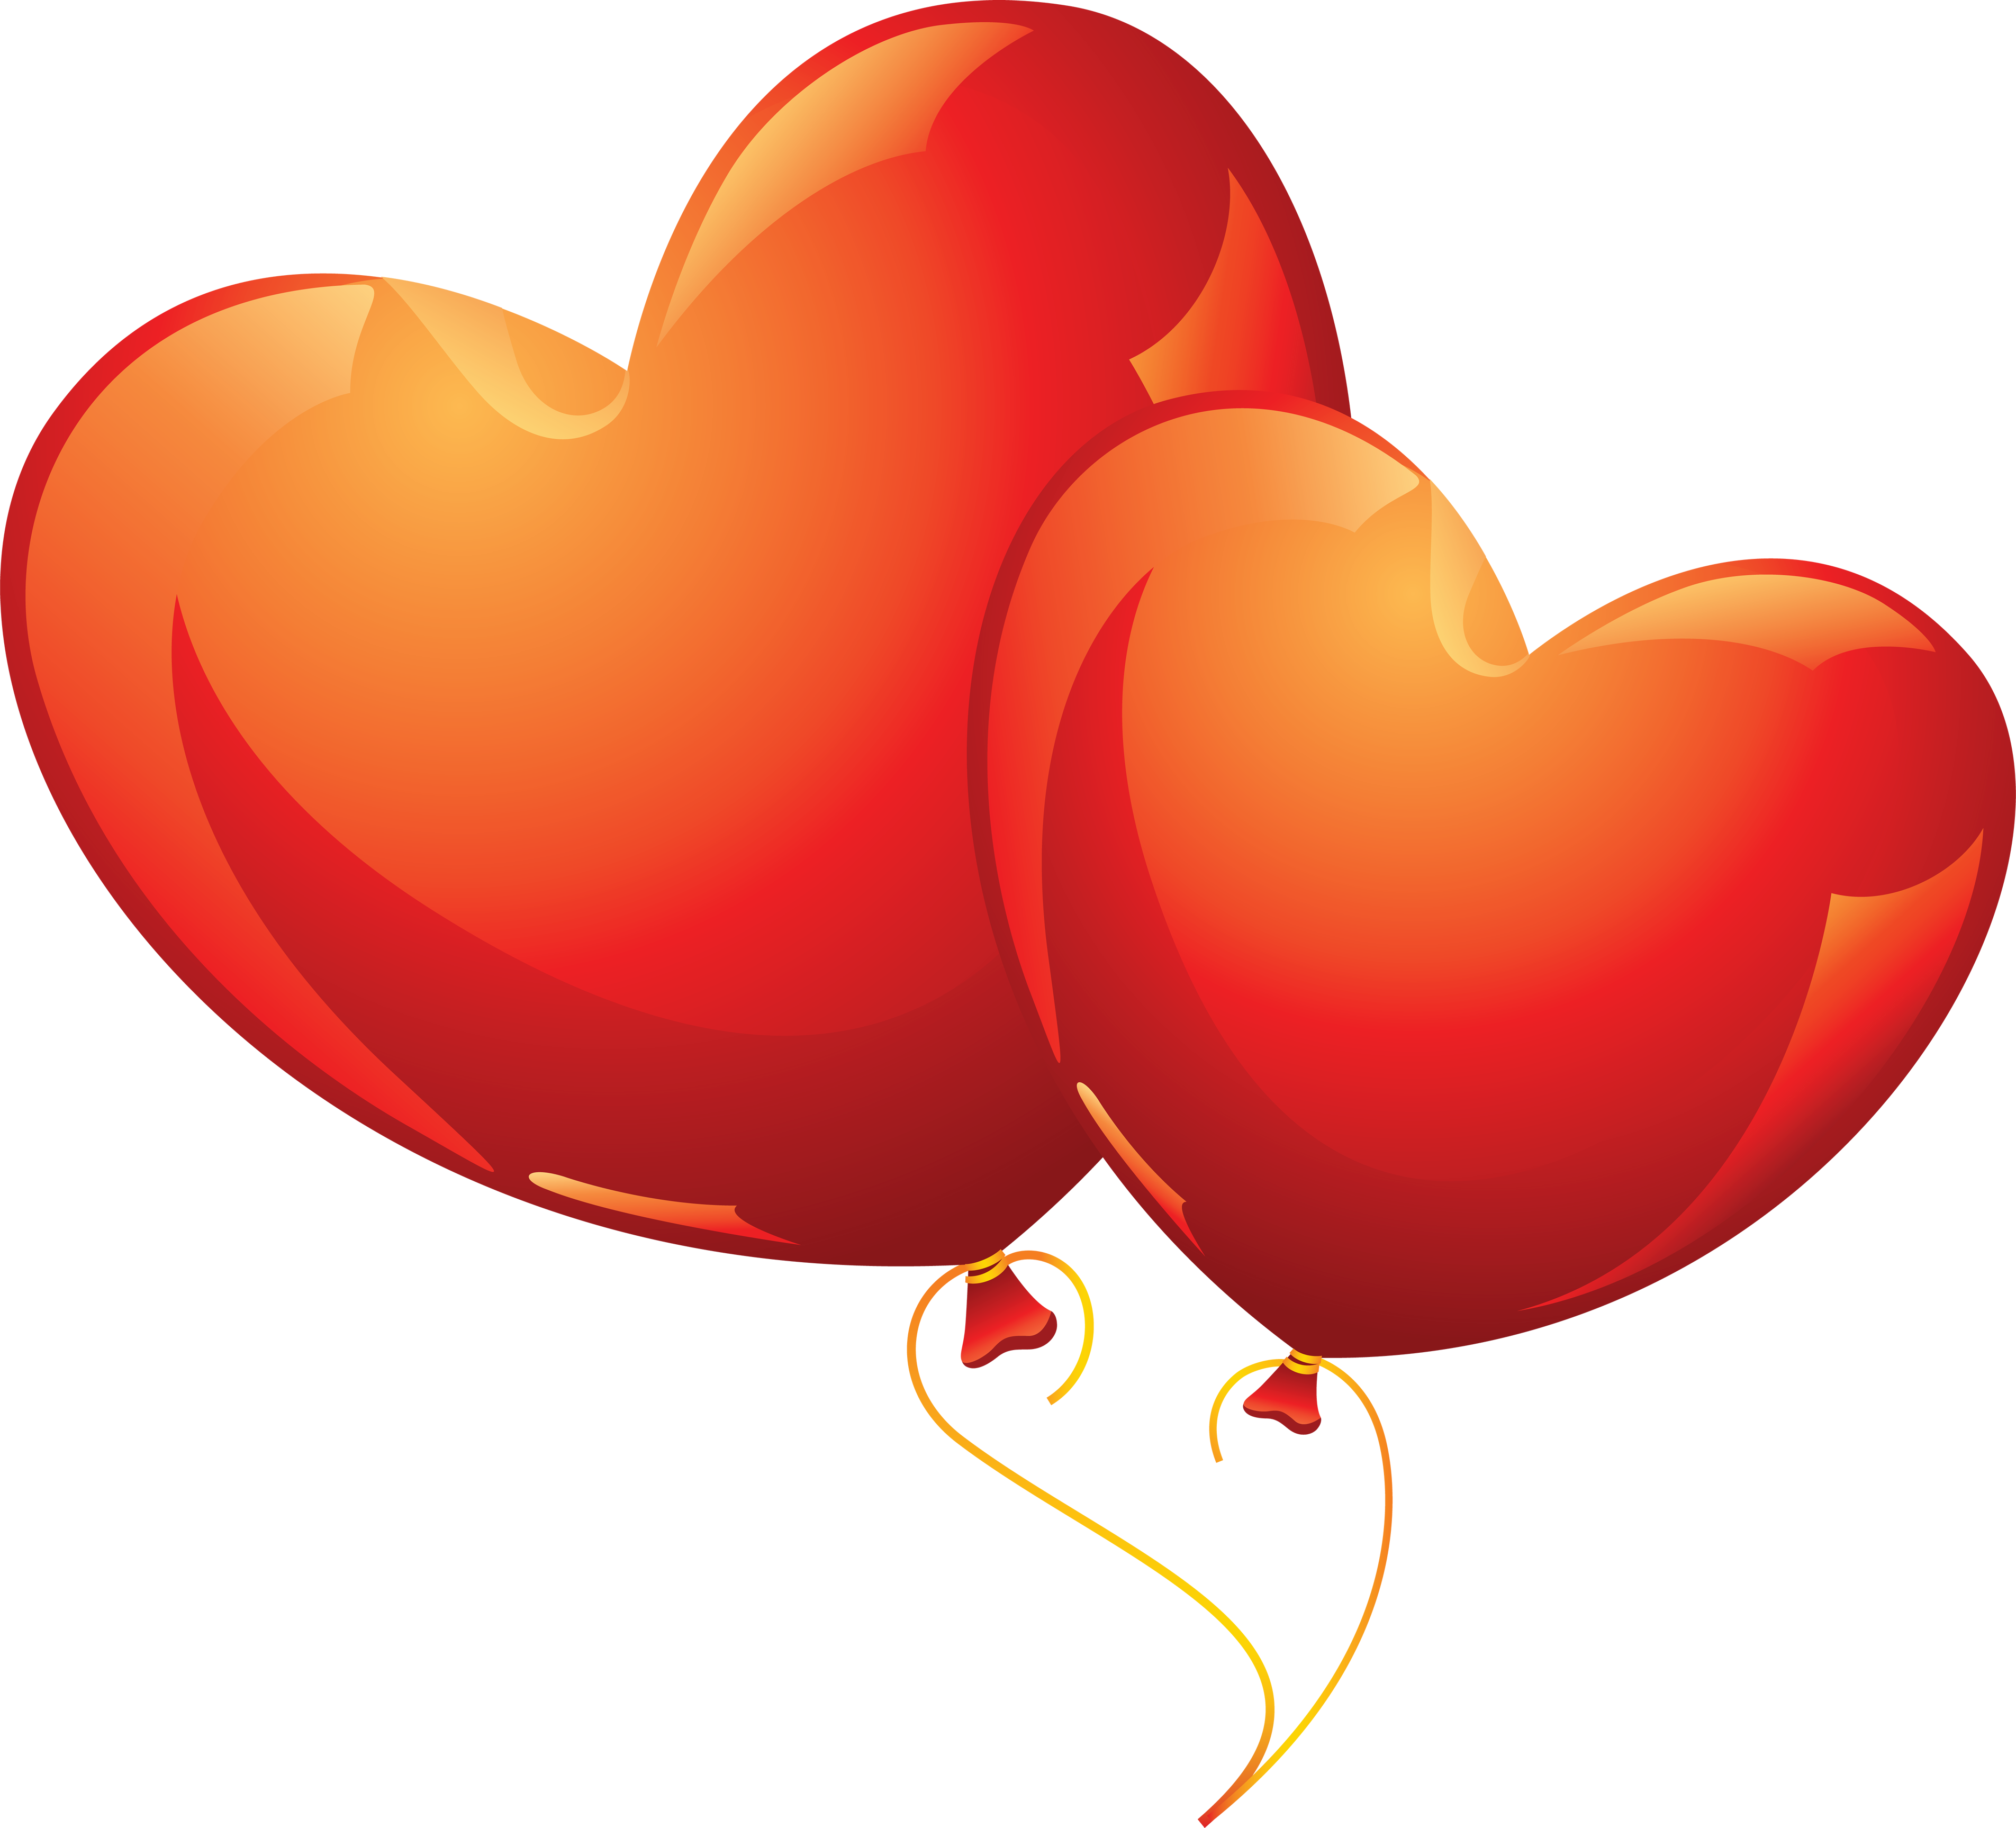 Heart PNG image, free download - Dil PNG